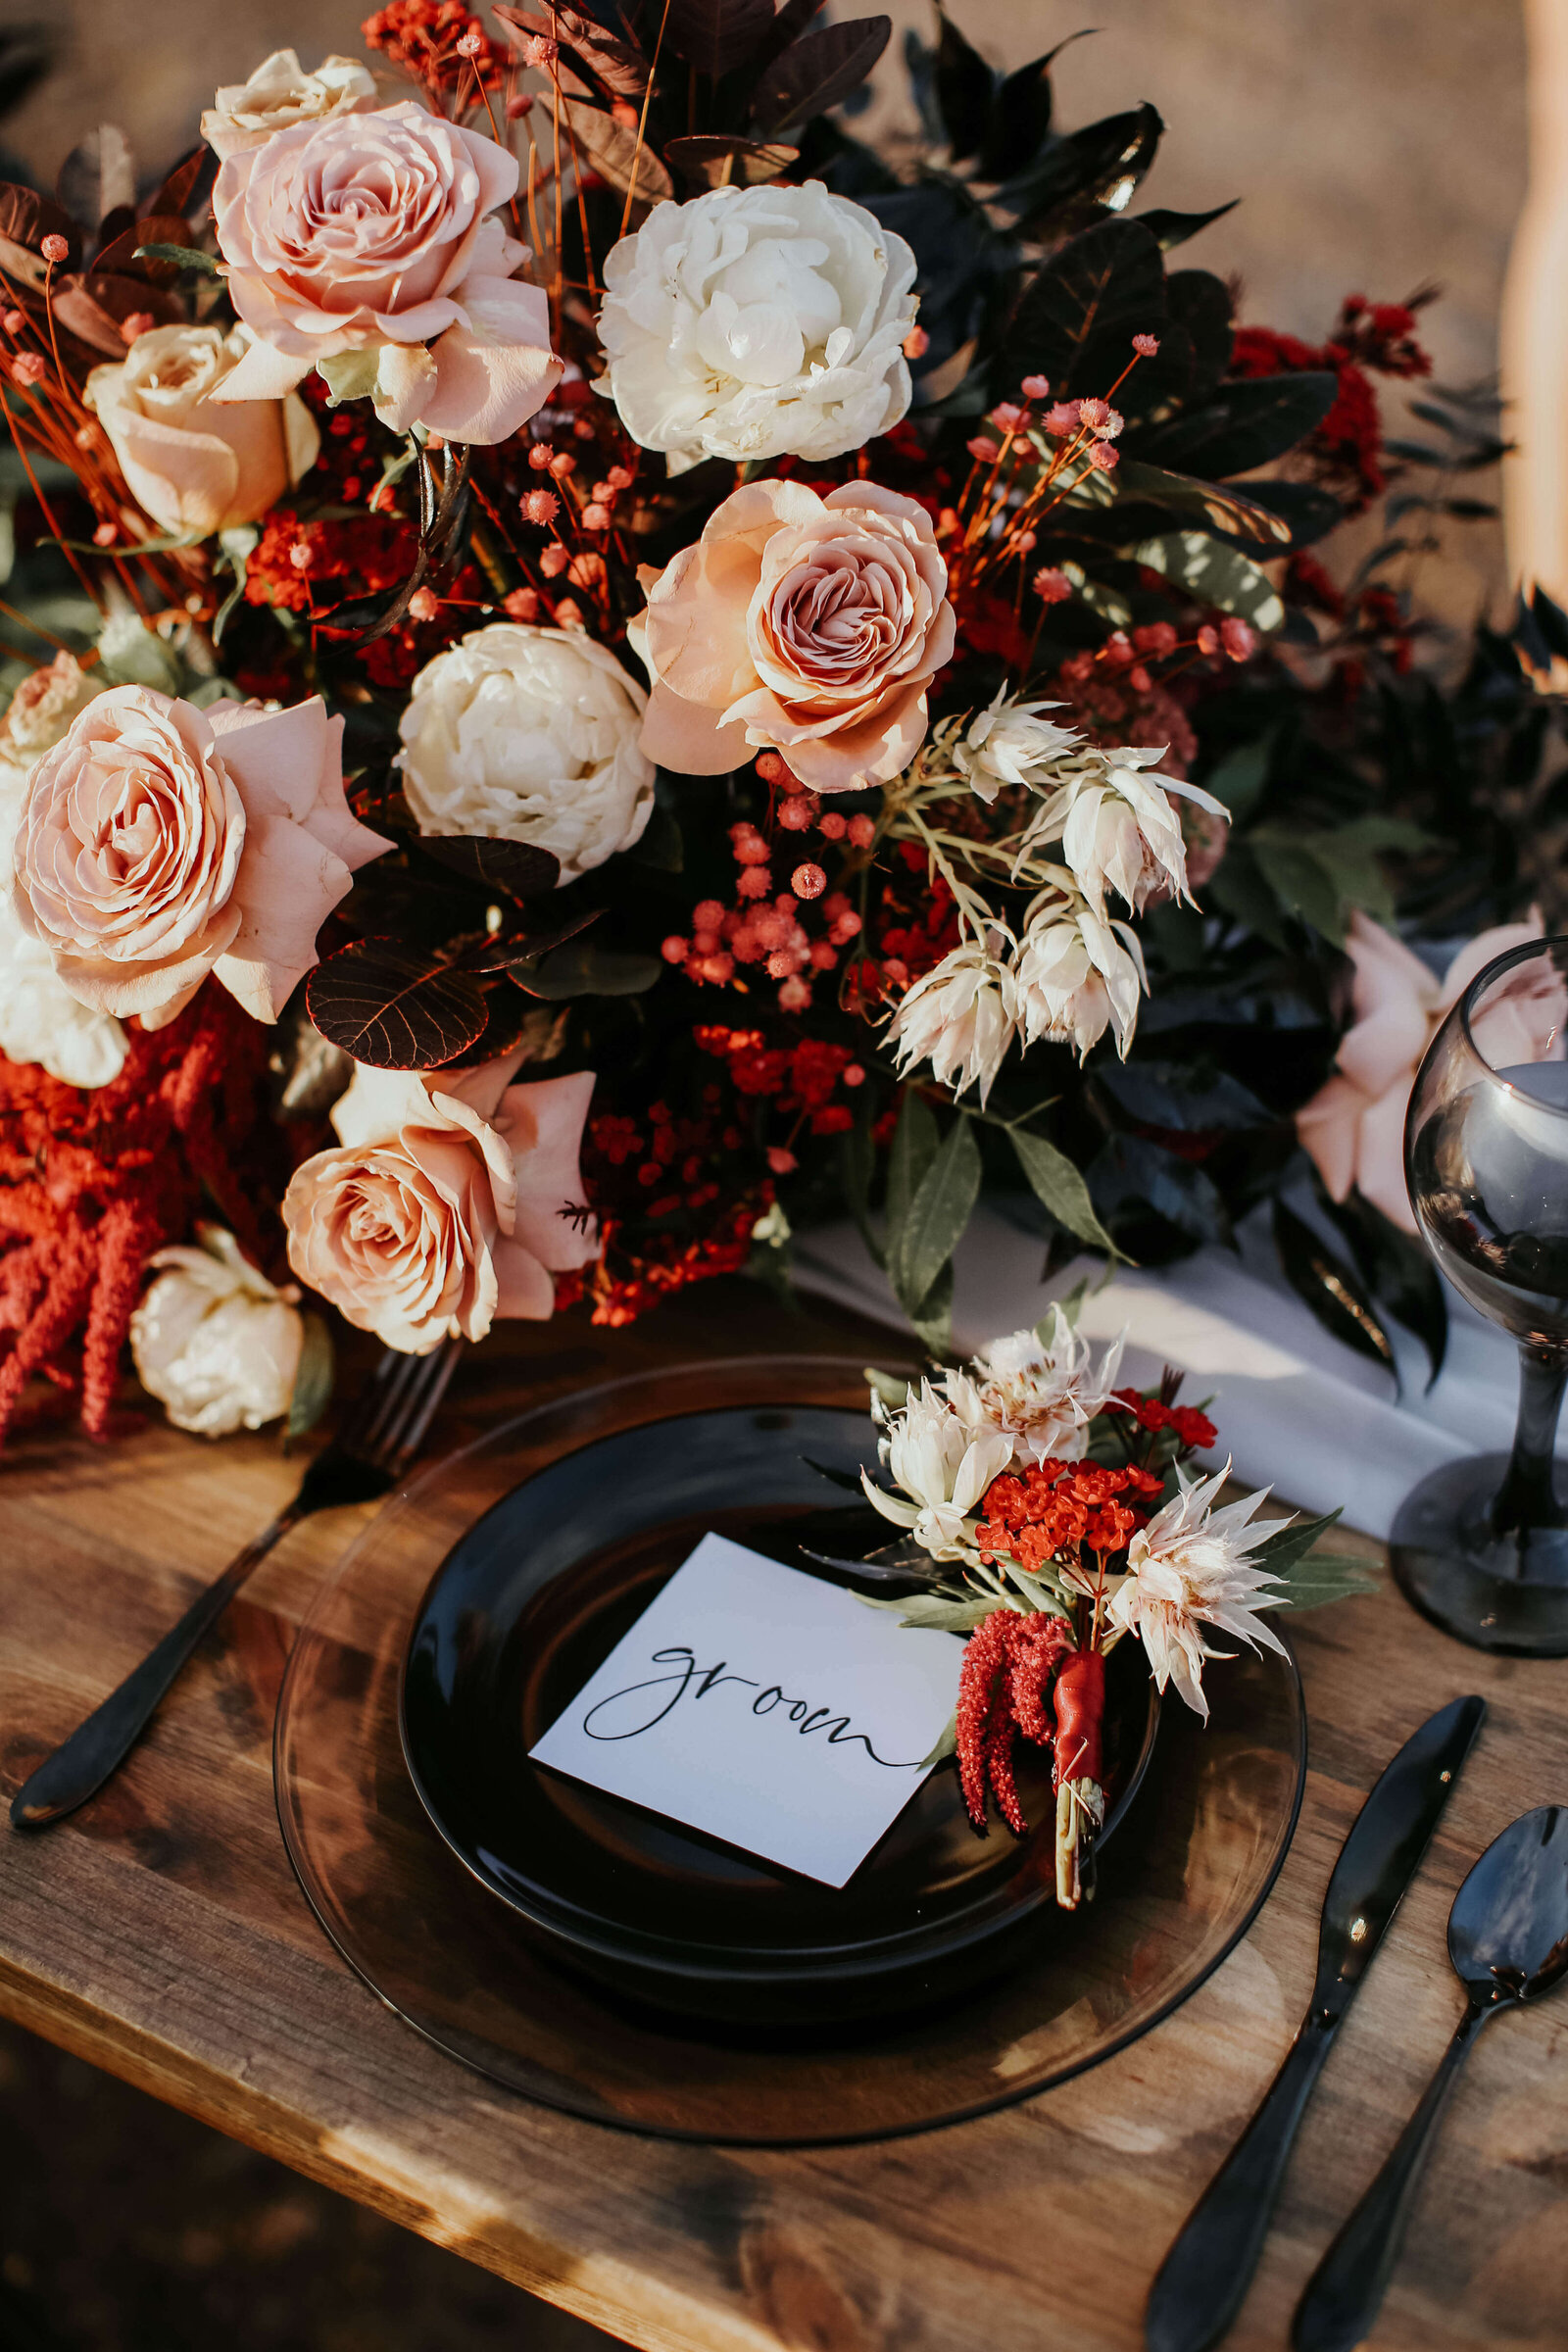 Penngrove-california-elopement-modern-bohemian-sonoma-county-elopement-events-by-gianna-somona-wedding-planner-13